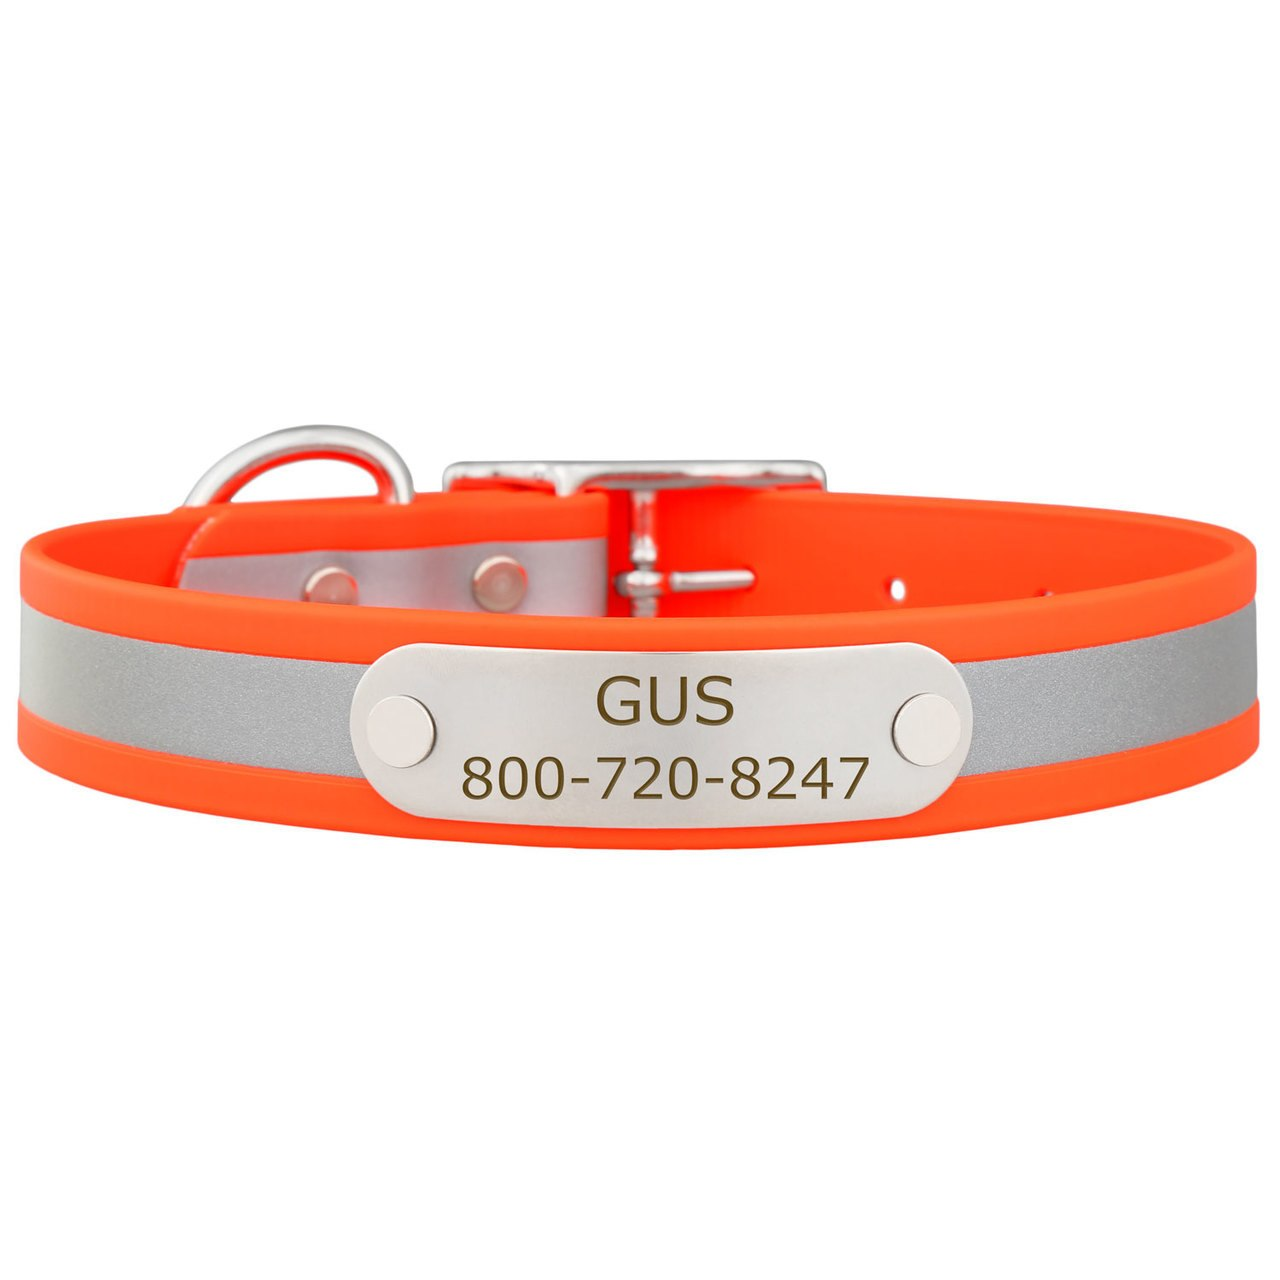 Reflective Waterproof Soft Grip Dog Collar with Nameplate Orange